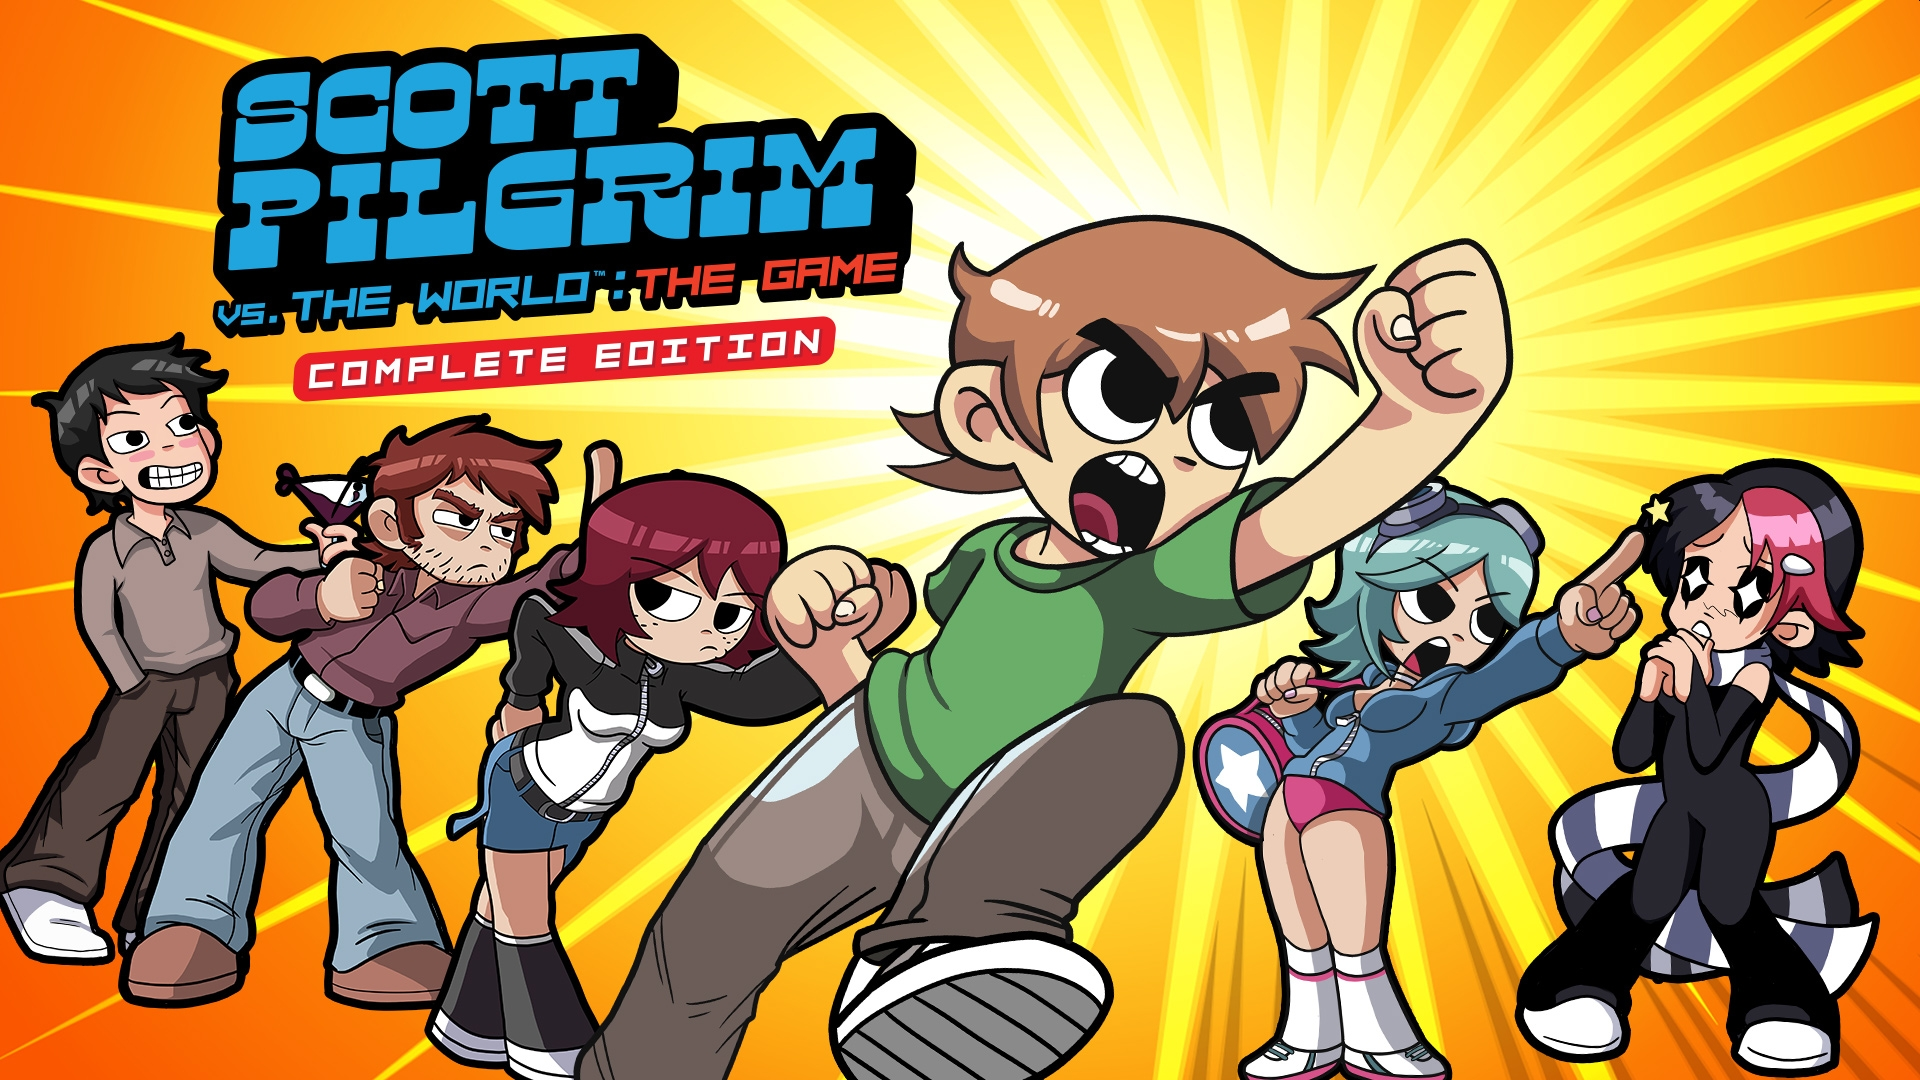 Limited Run Games Announces Special Editions Of Scott Pilgrim vs. The World: The Game Complete Edition